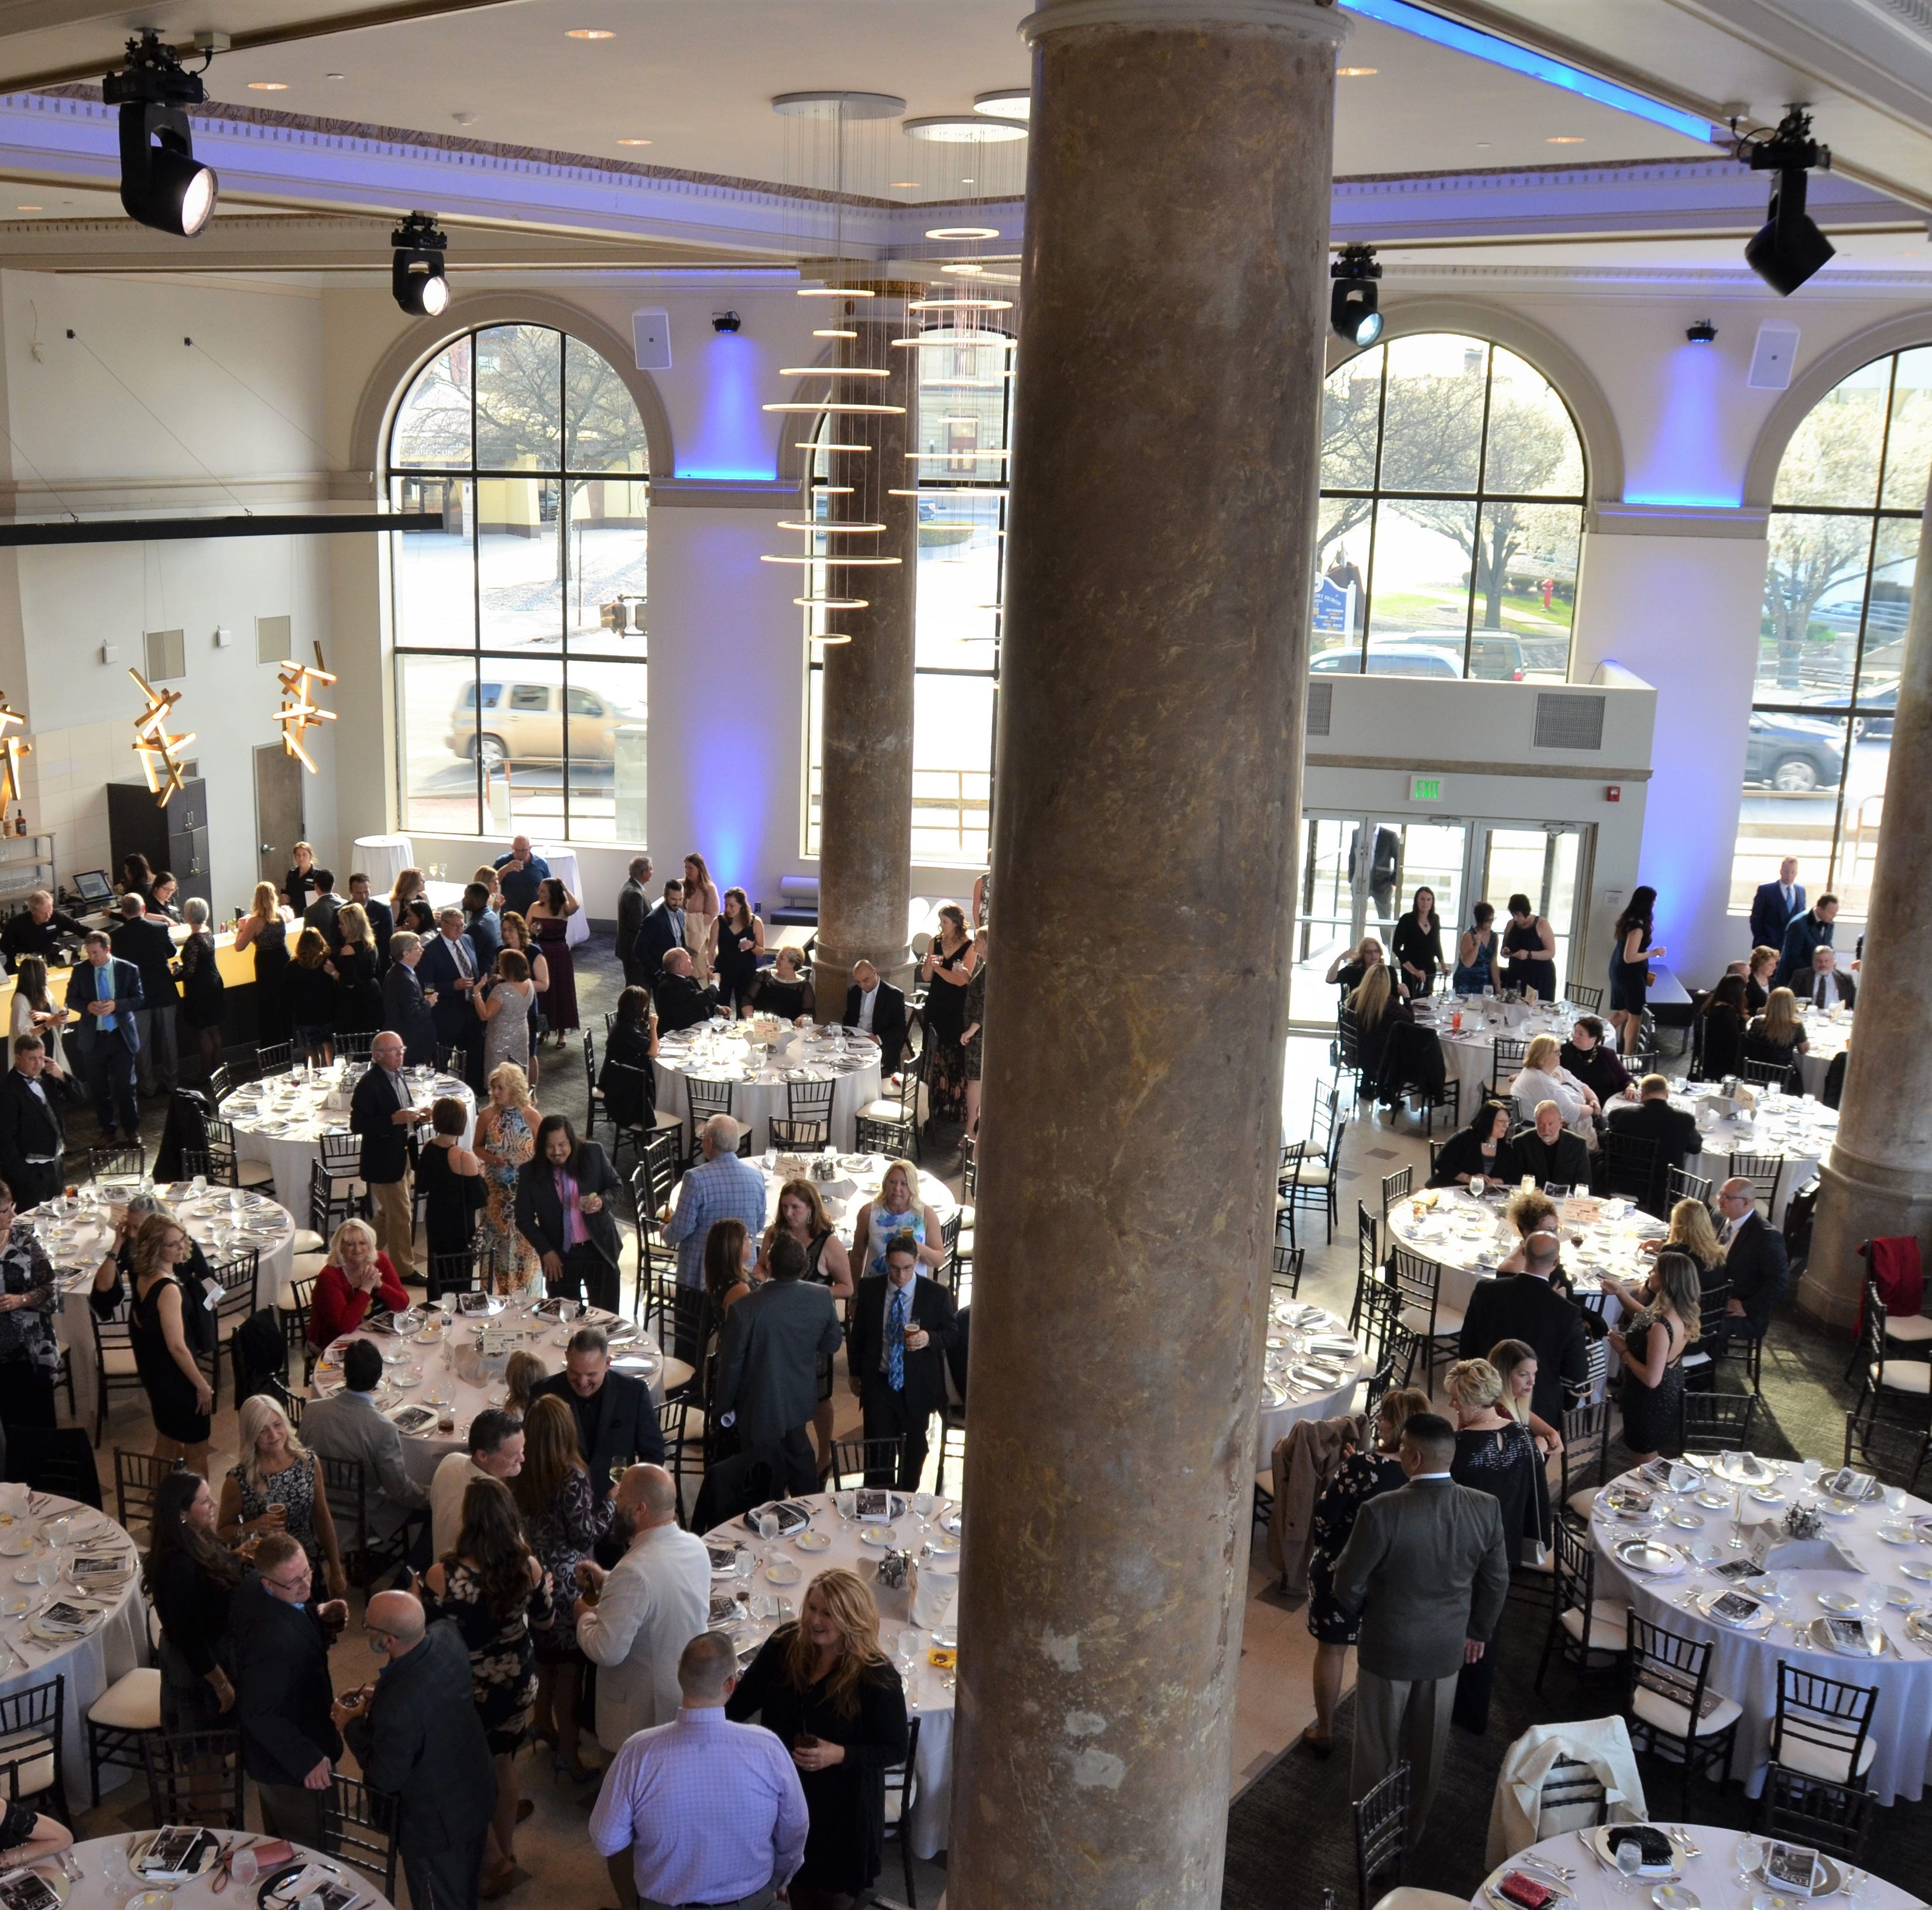 CityFlats ballroom debuts to local business leaders